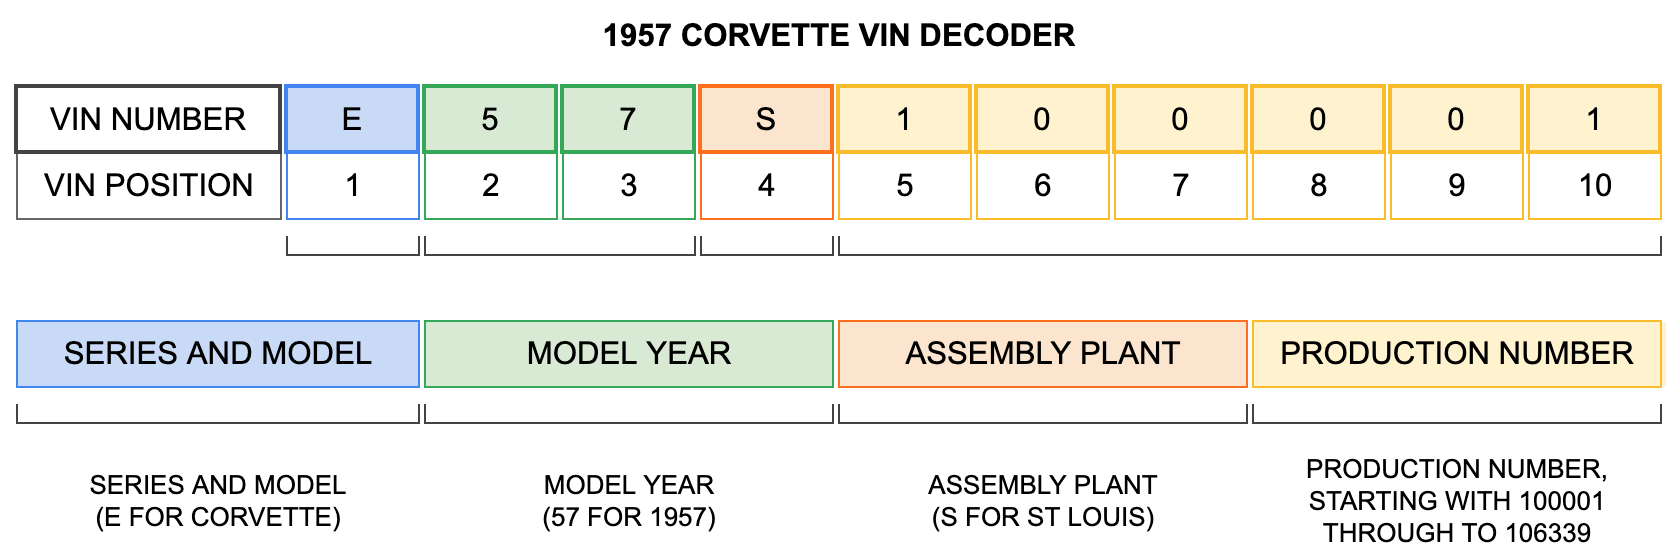 1957 Corvette VIN Decoder